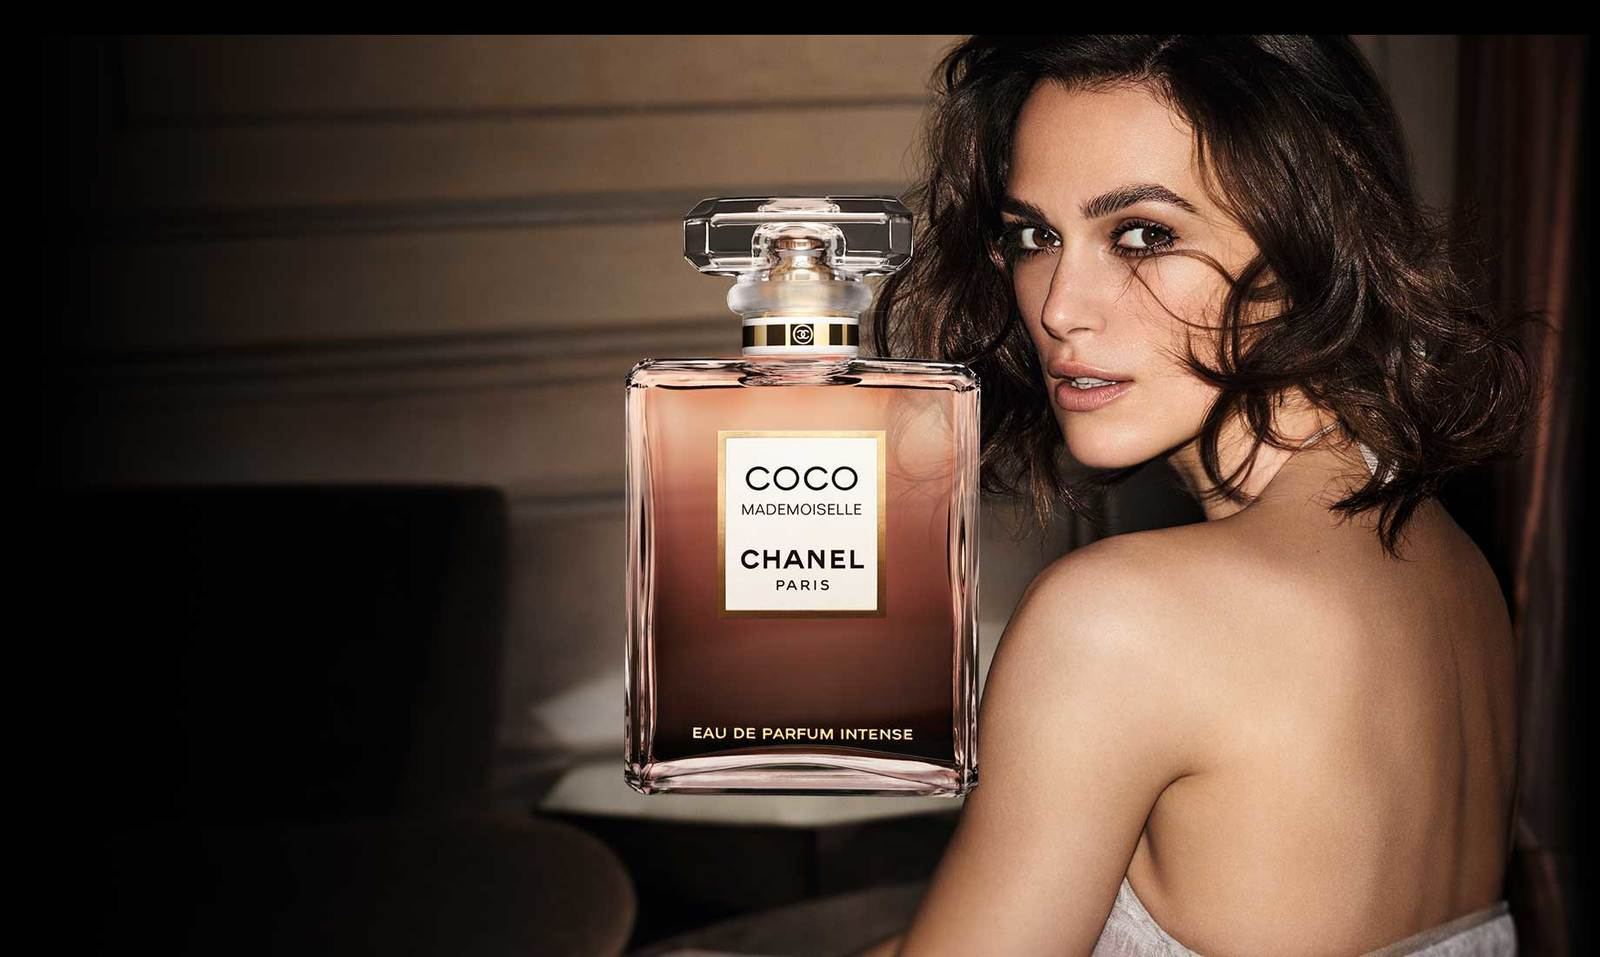 coco mademoiselle chanel perfume marketing history Chanel coco mademoiselle (2001), currently the usa's top selling women's fragrance, has little to do with the 1984 coco fragrance it allegedly flanks one isn't related to the other, except from a marketing standpoint that has coco mademoiselle positioned to sell to young women and coco aimed at an older crowd.